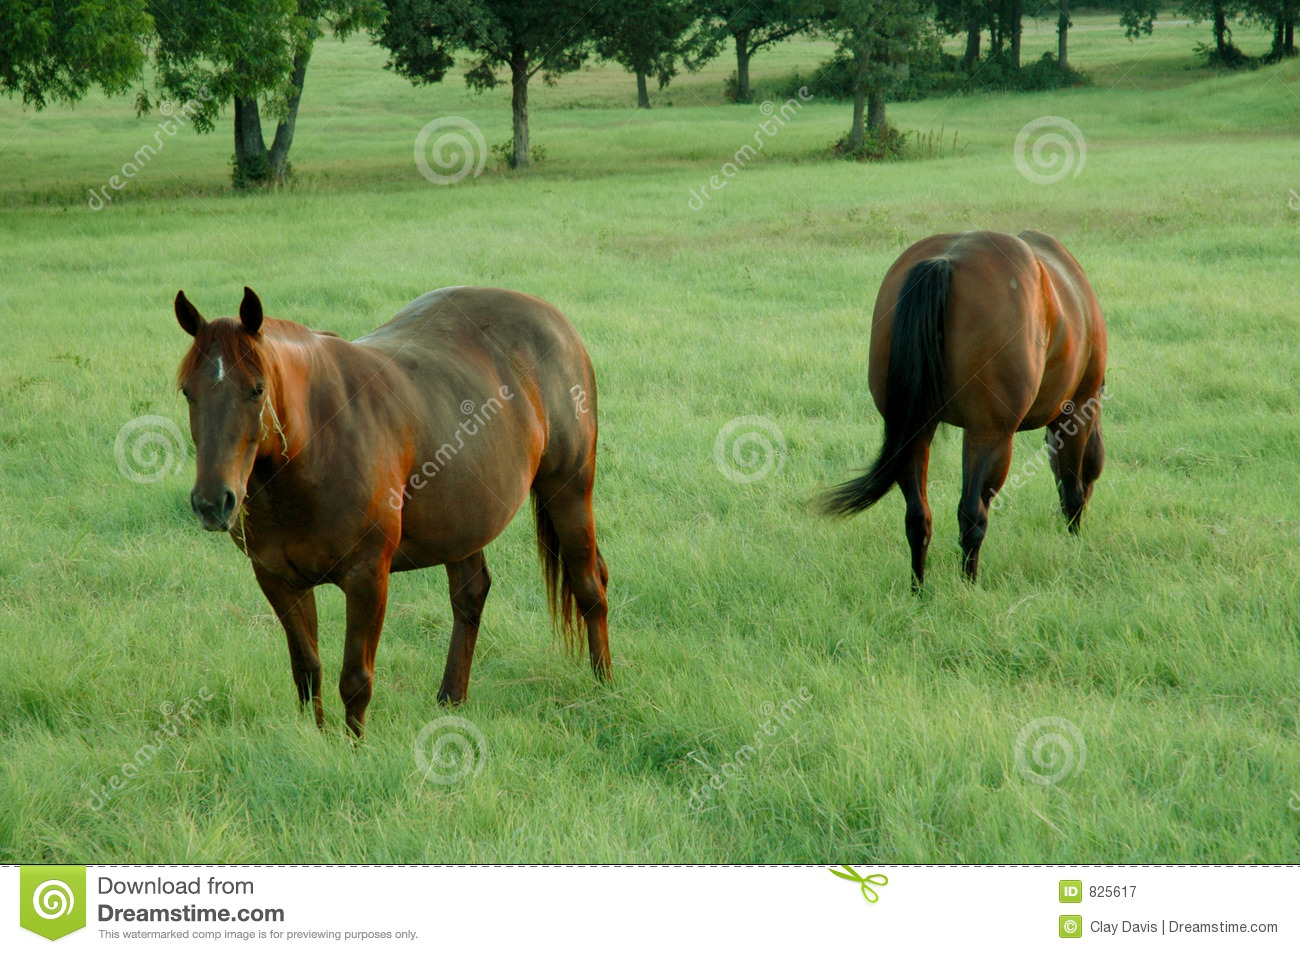 2 horses in a pasture